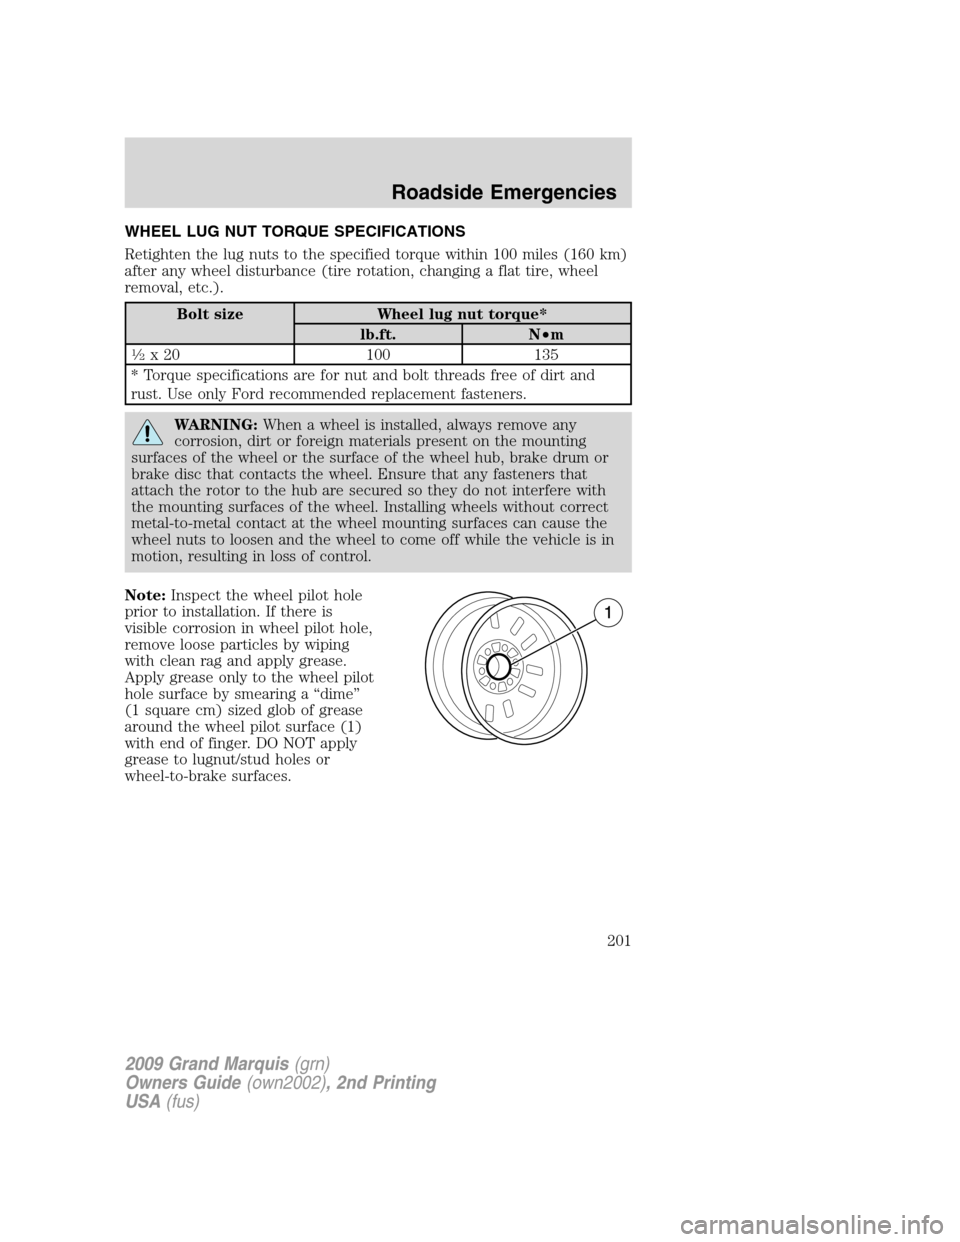 Brake Rotor Mercury Grand Marquis 2009 Owner S Manuals 270 Pages